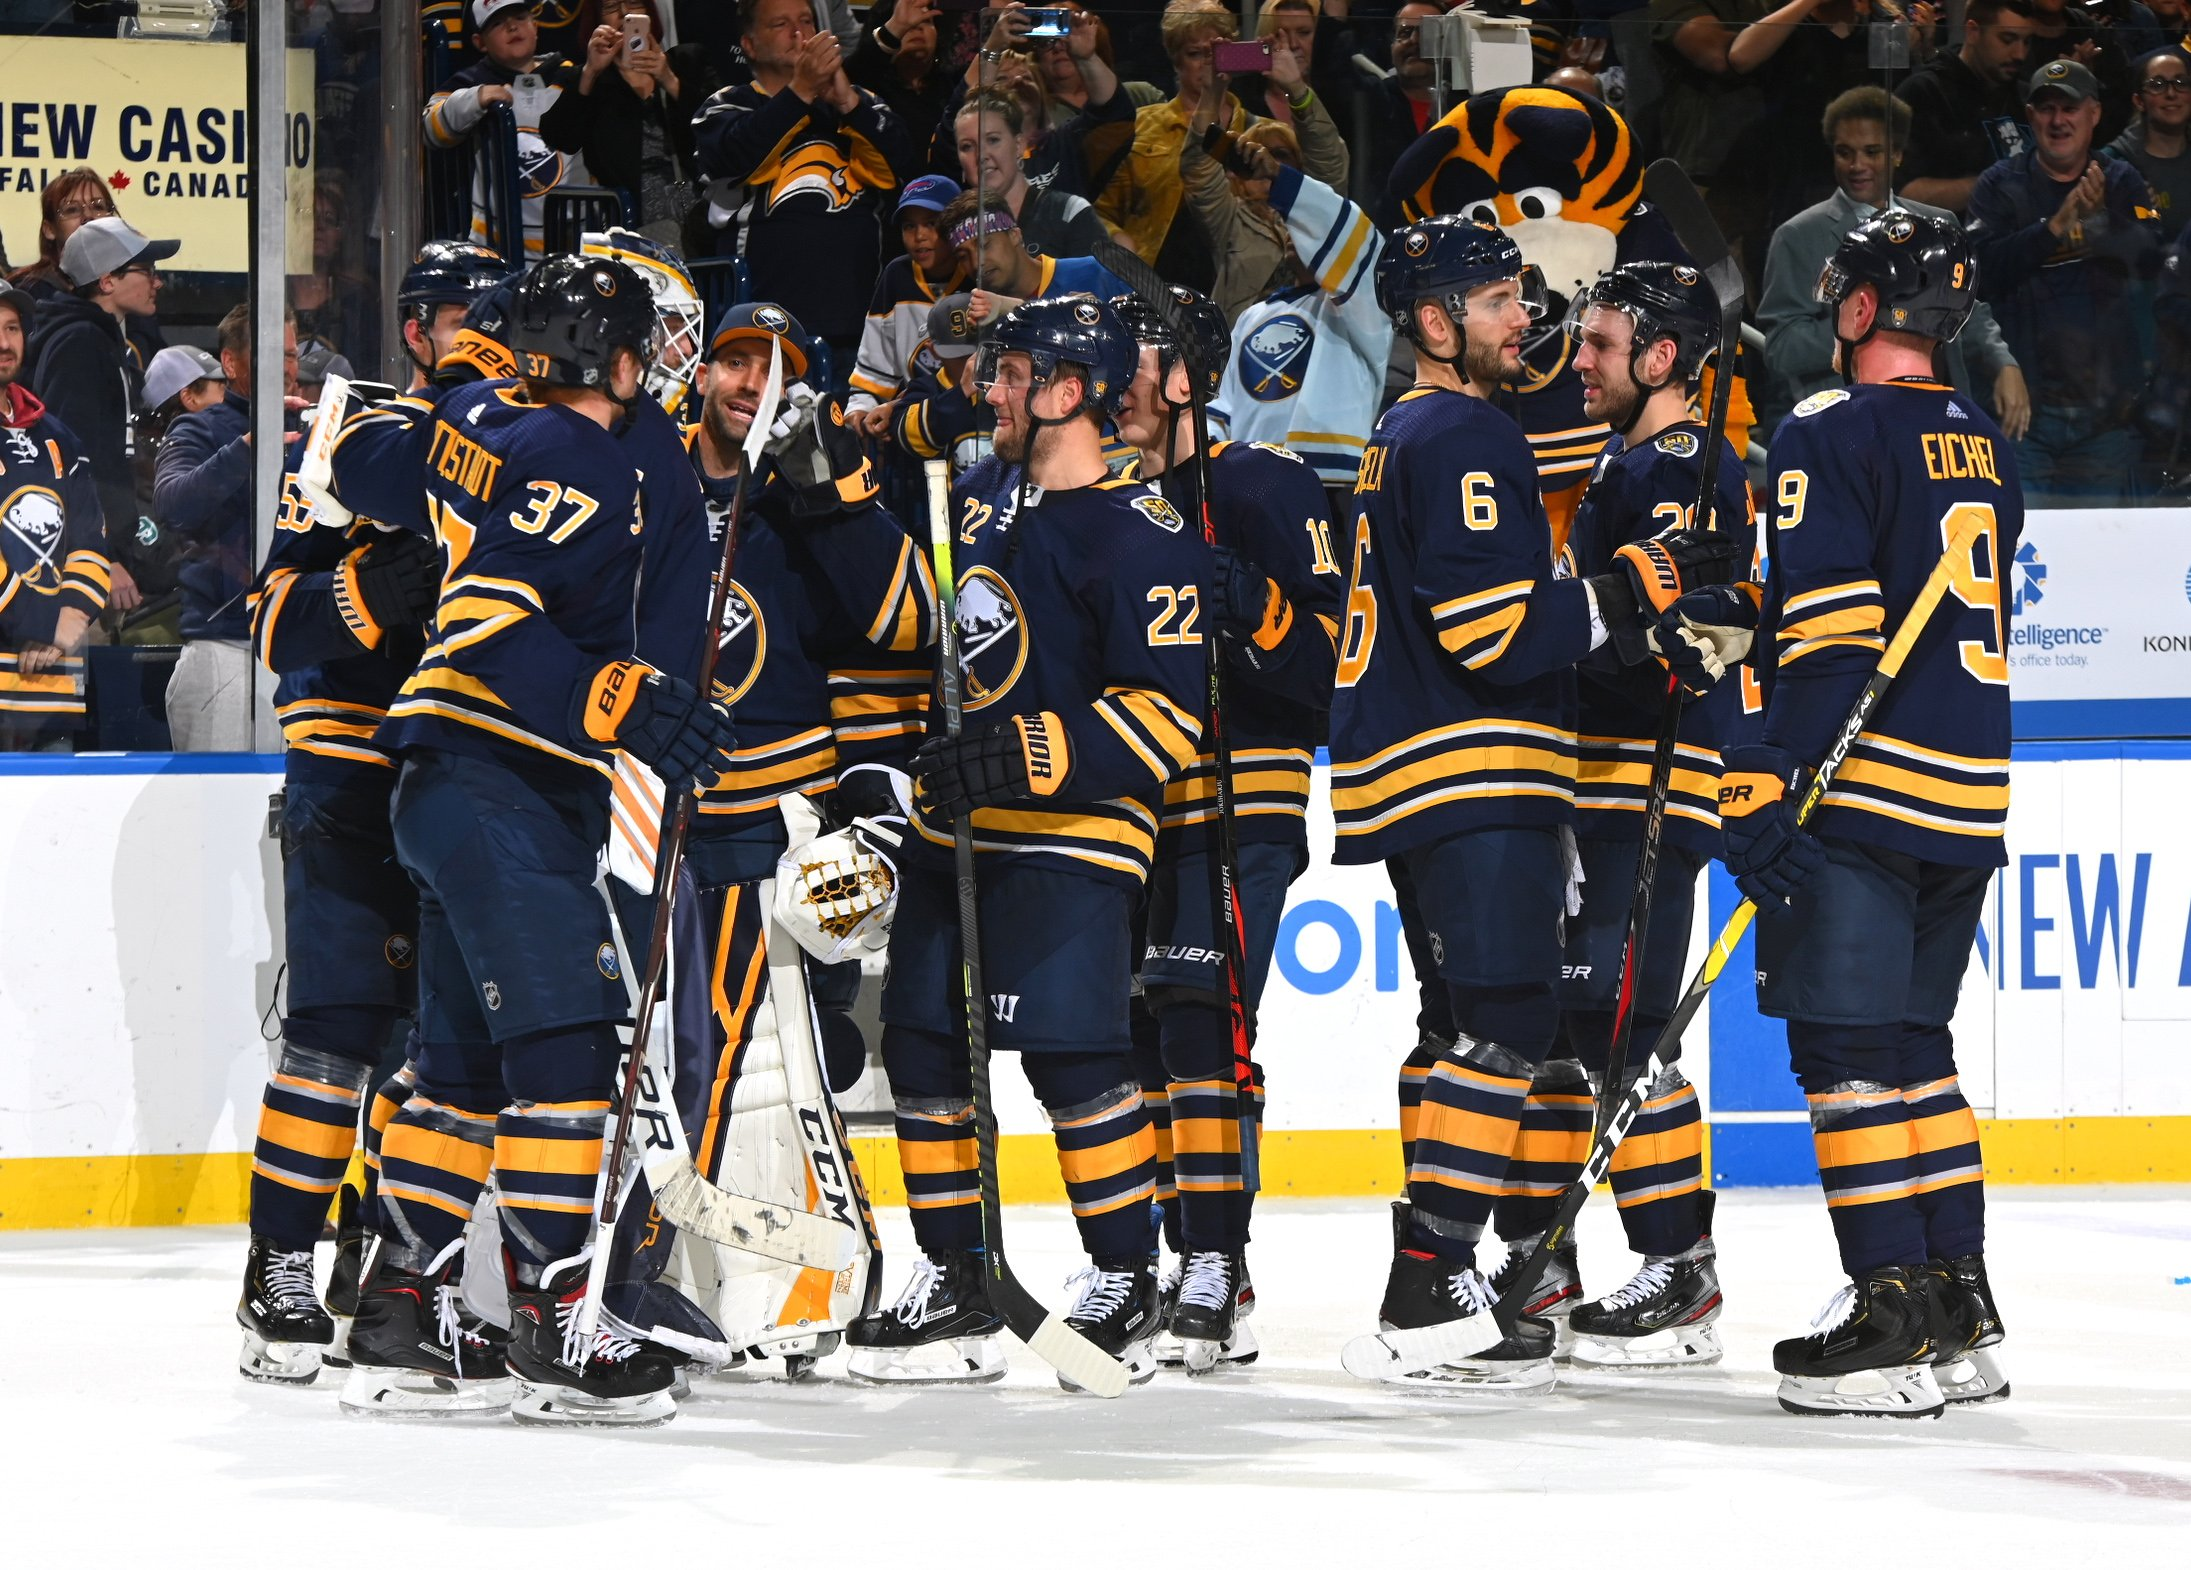 Sabres defeat Panthers 3-2 in a shootout